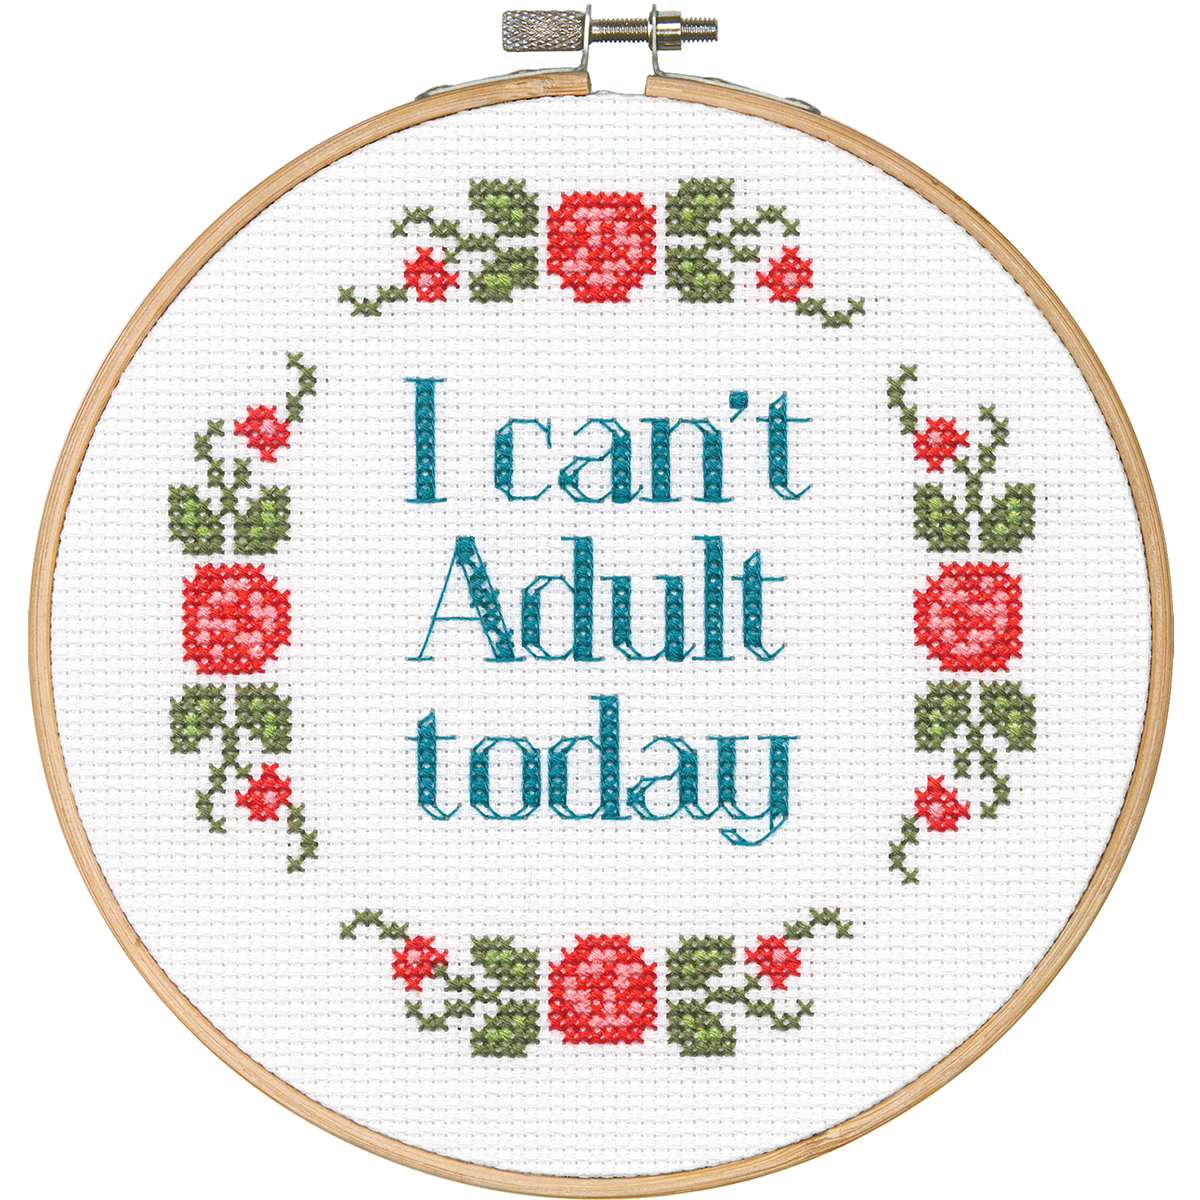 "Dimensions/Say It! Counted Cross Stitch Kit 6"" Round-Can't Adult (14 Count) - image 1 of 1"